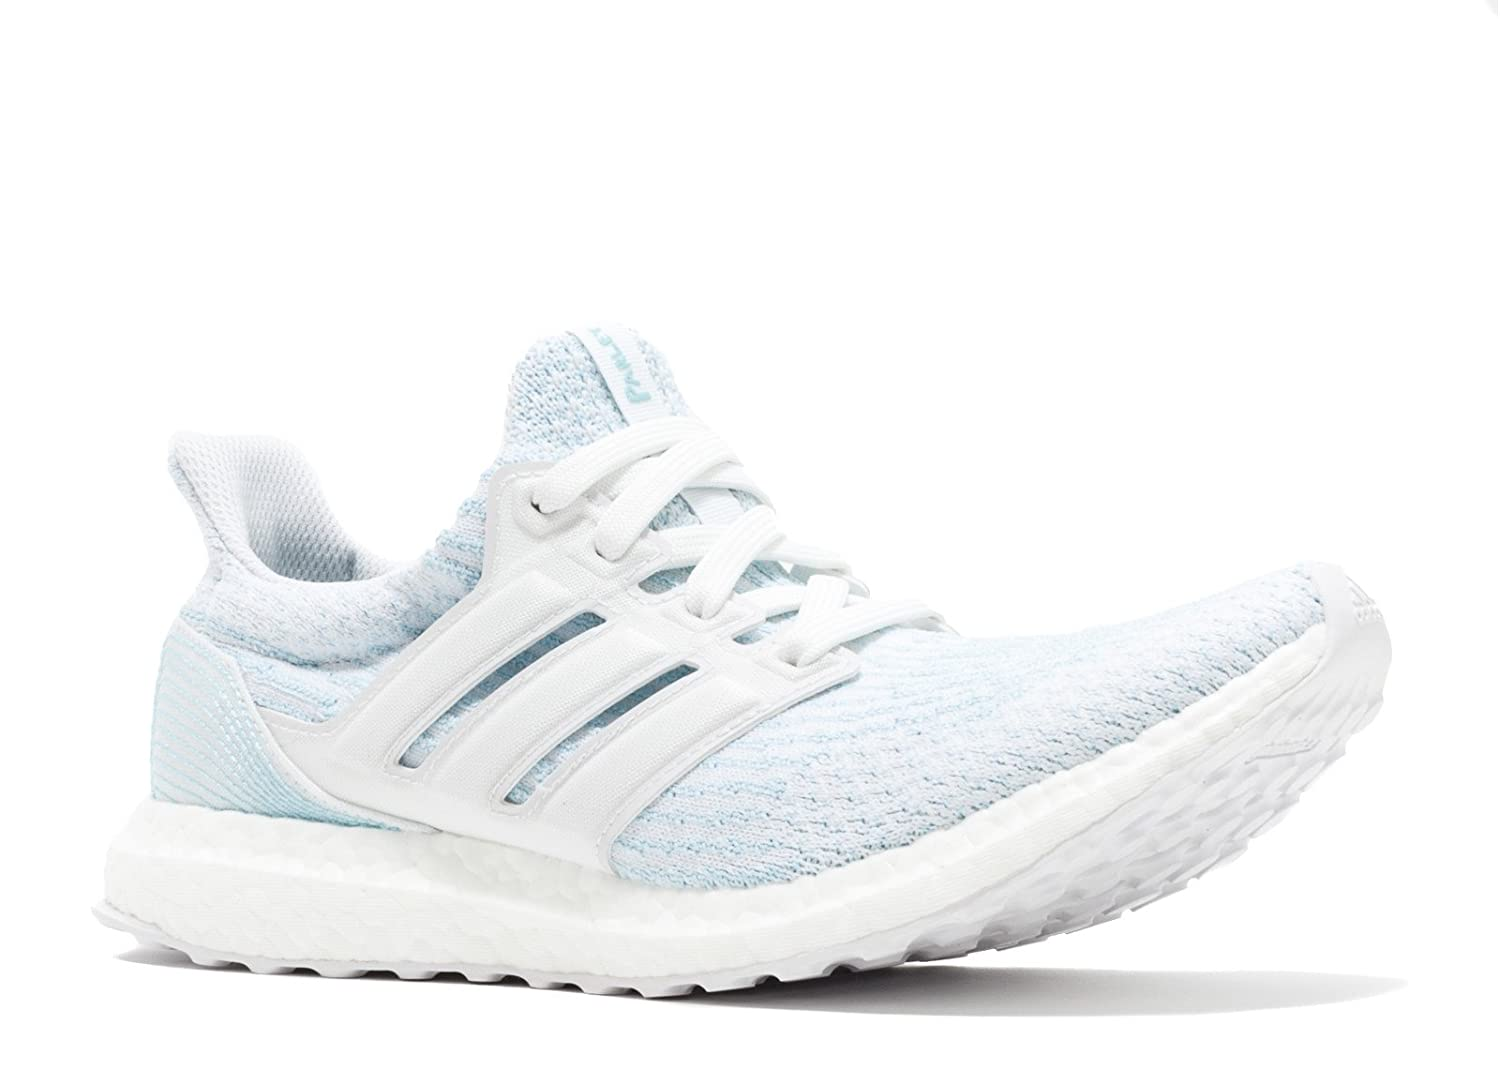 e2916ee68c1a5 adidas Ultra Boost Parley - CP9685 -  Amazon.co.uk  Shoes   Bags